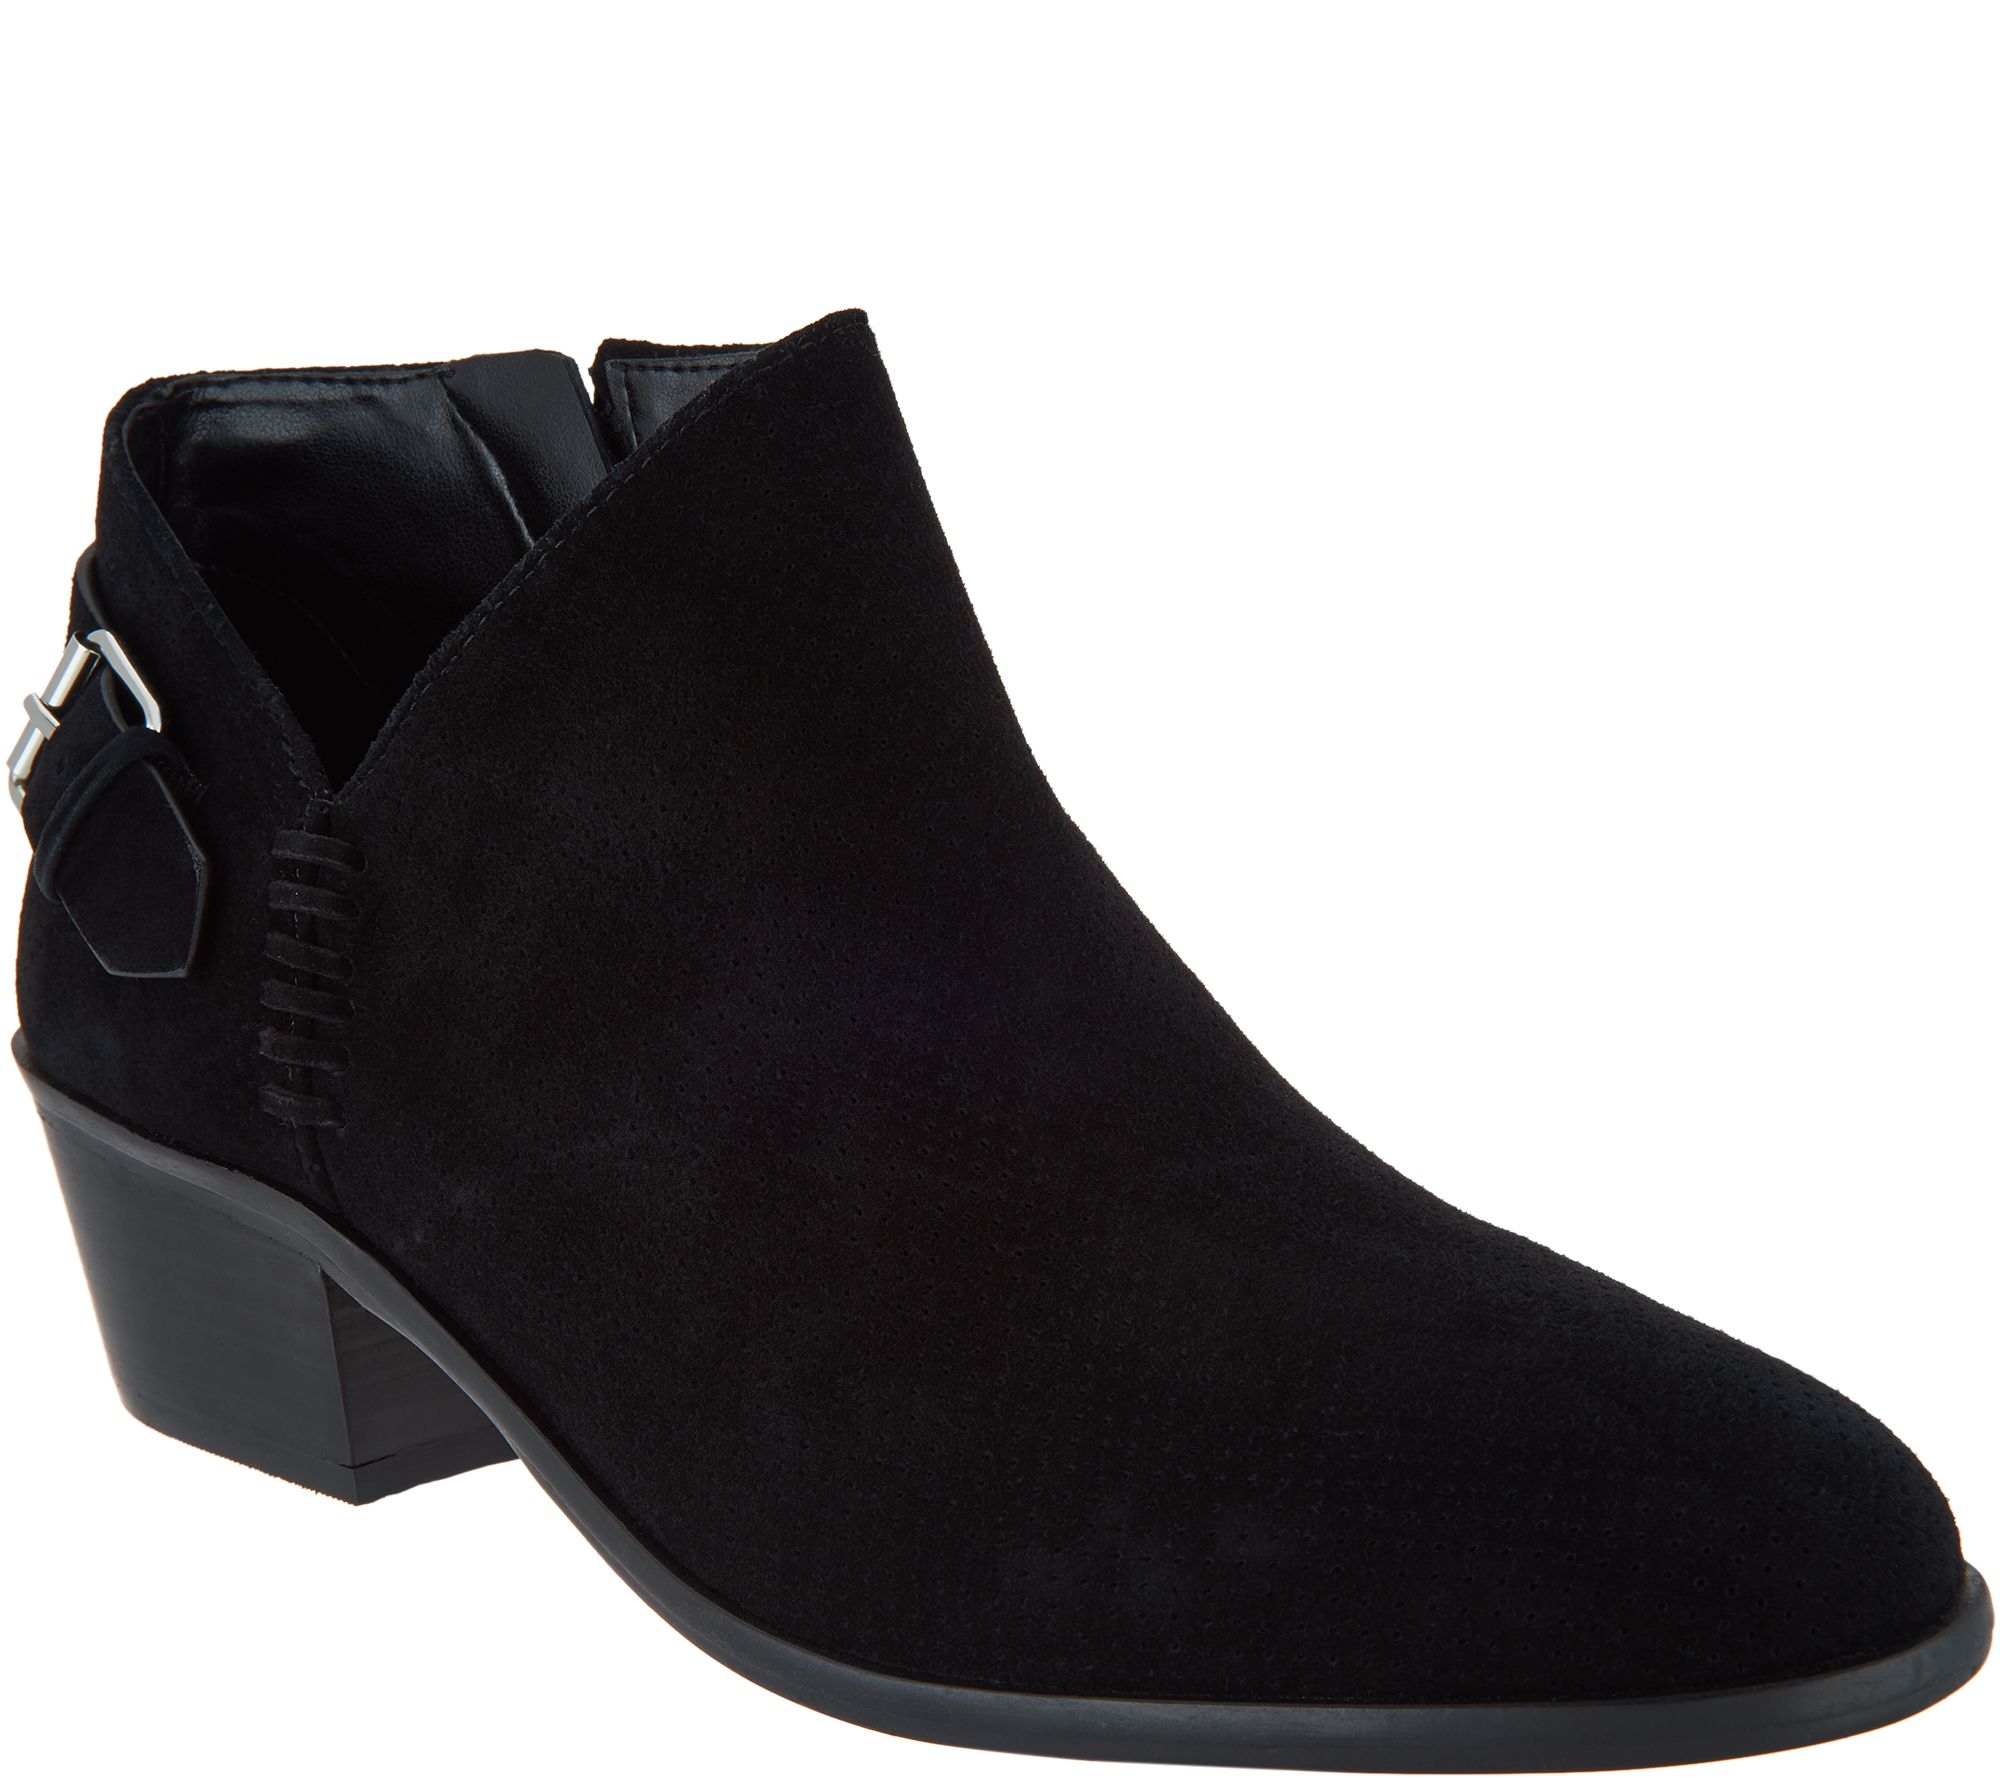 79027d585da9f Vince Camuto Suede Booties with Buckle Detail - Parveen - Page 1 — QVC.com